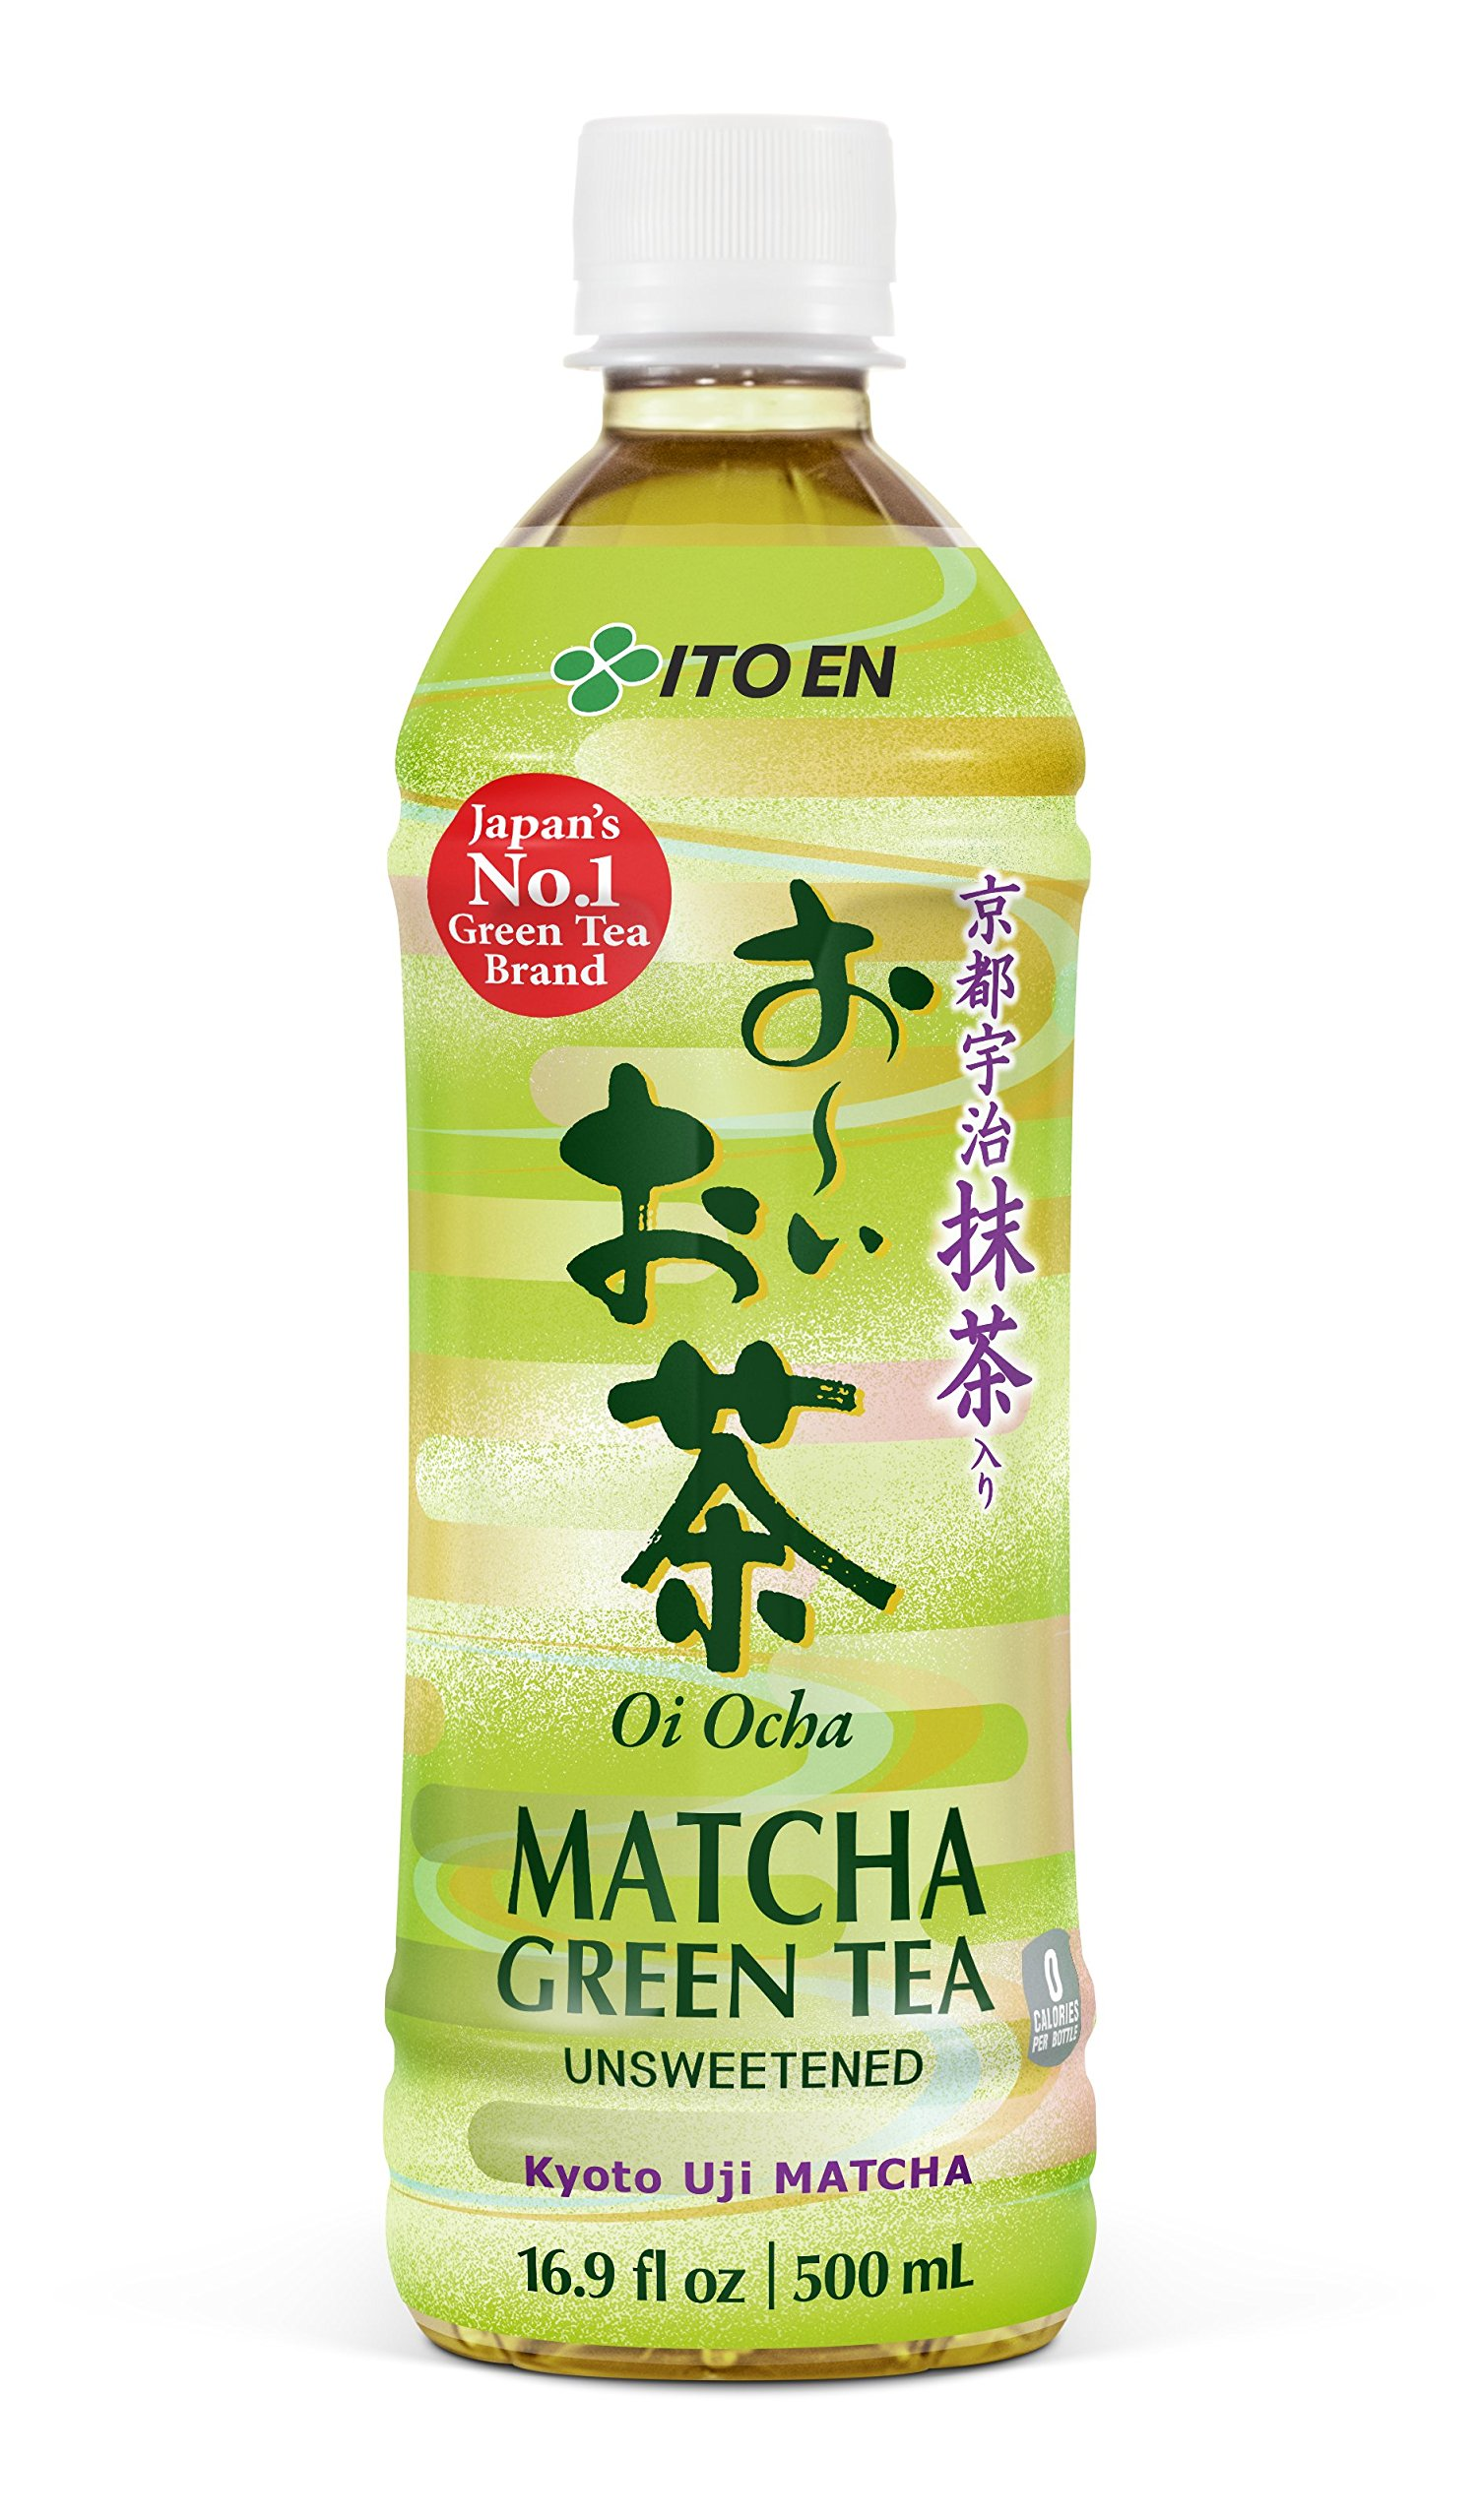 Oi Ocha Matcha Green Tea Unsweetened, 16.9 Ounce Bottle (Pack of 12), No Sugar, No Artificial Sweeteners, Antioxidant Rich, Authentic Japanese Green Tea, Caffeinated by Ito En